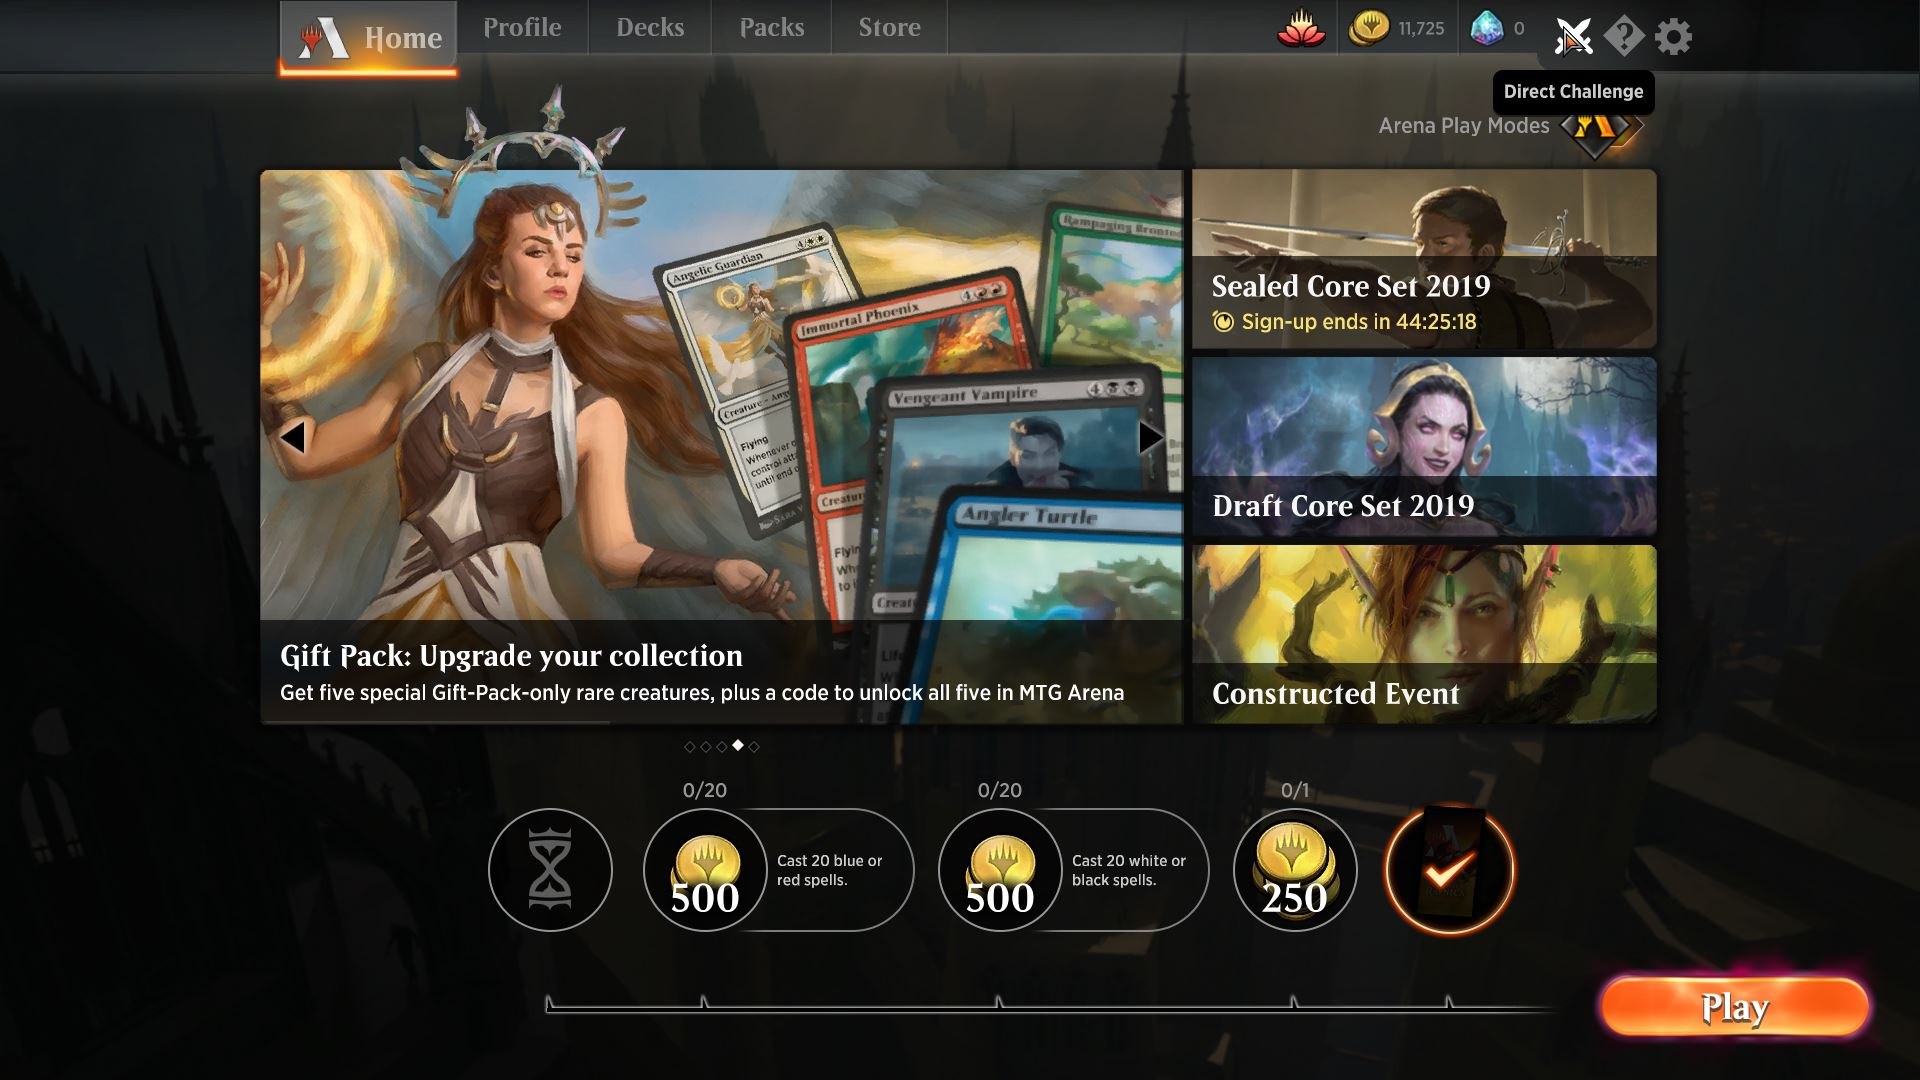 How to use Direct Challenge in Magic: The Gathering Arena